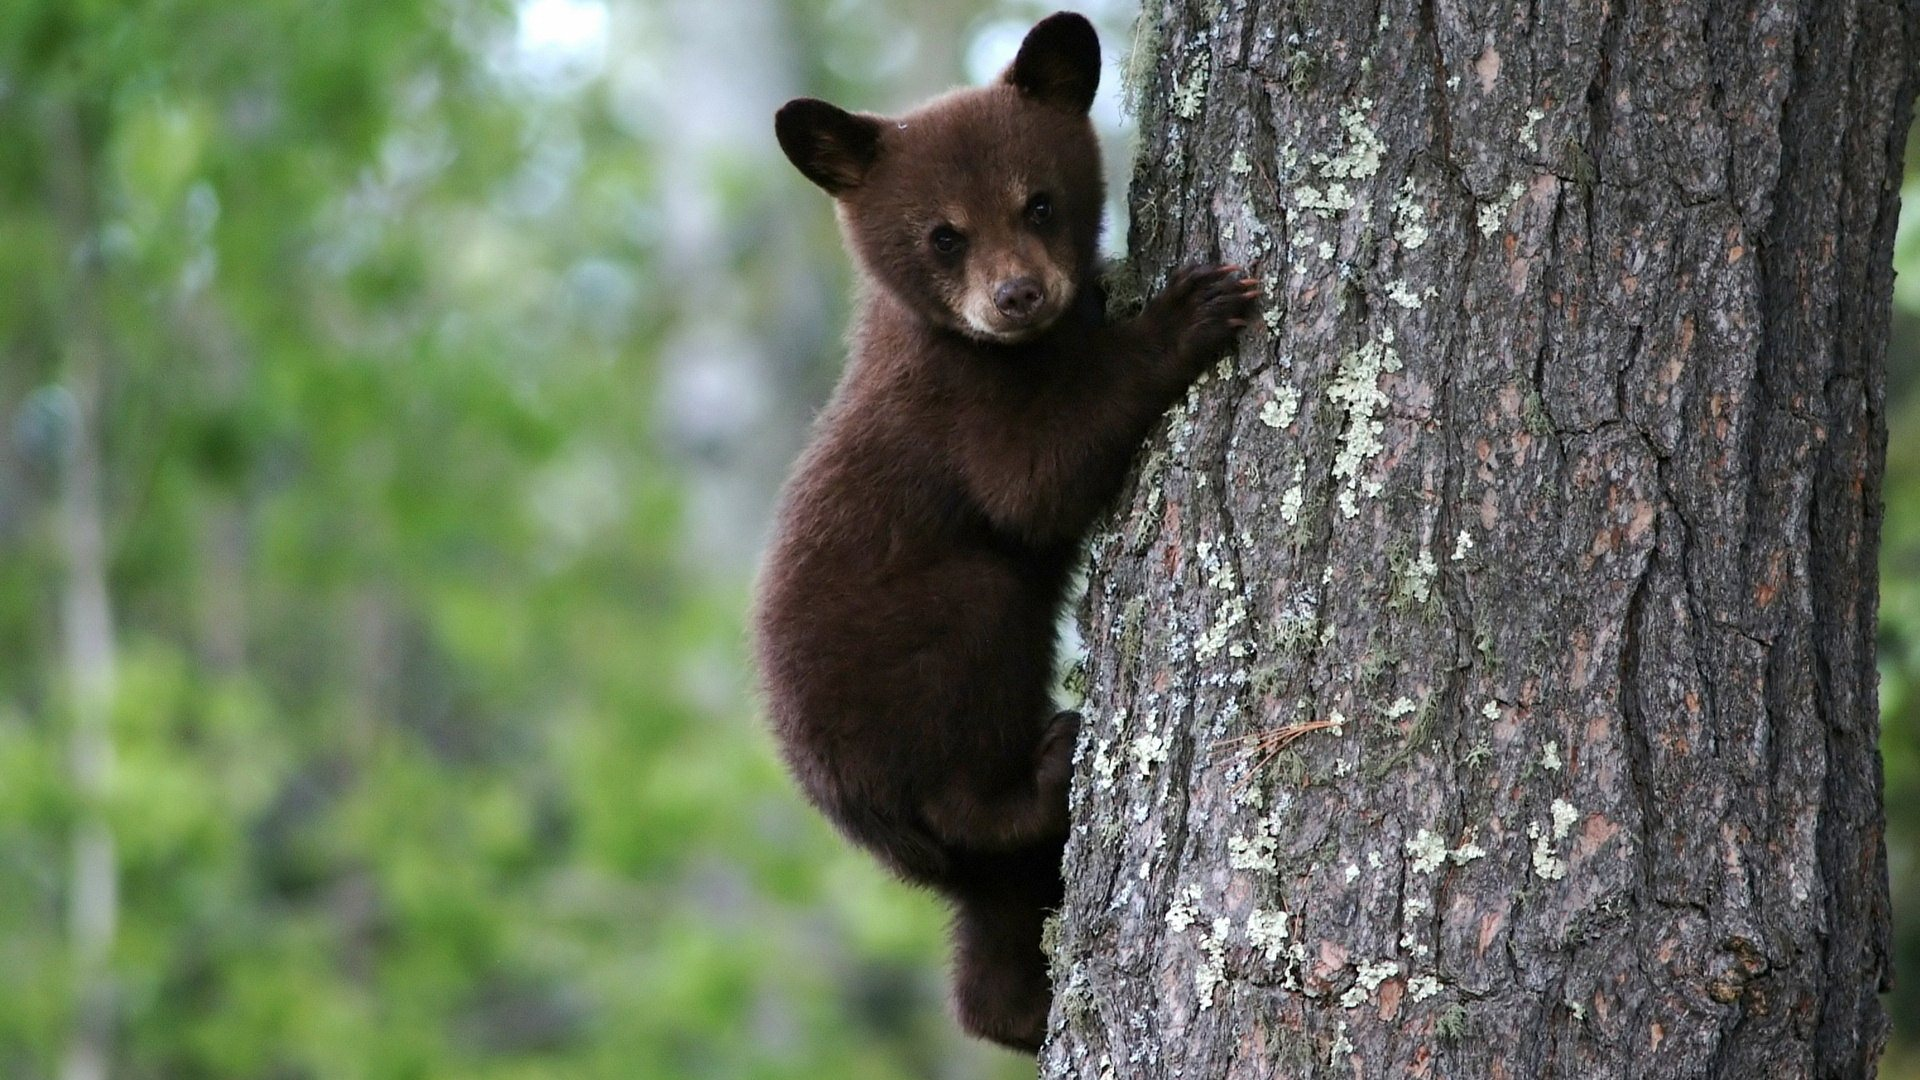 http://2.bp.blogspot.com/-00uIu94NiMU/UNxcTerDR_I/AAAAAAAAQFA/xyQkvCBSKcc/s1920/bear-cub-on-tree-wallpaper.jpg